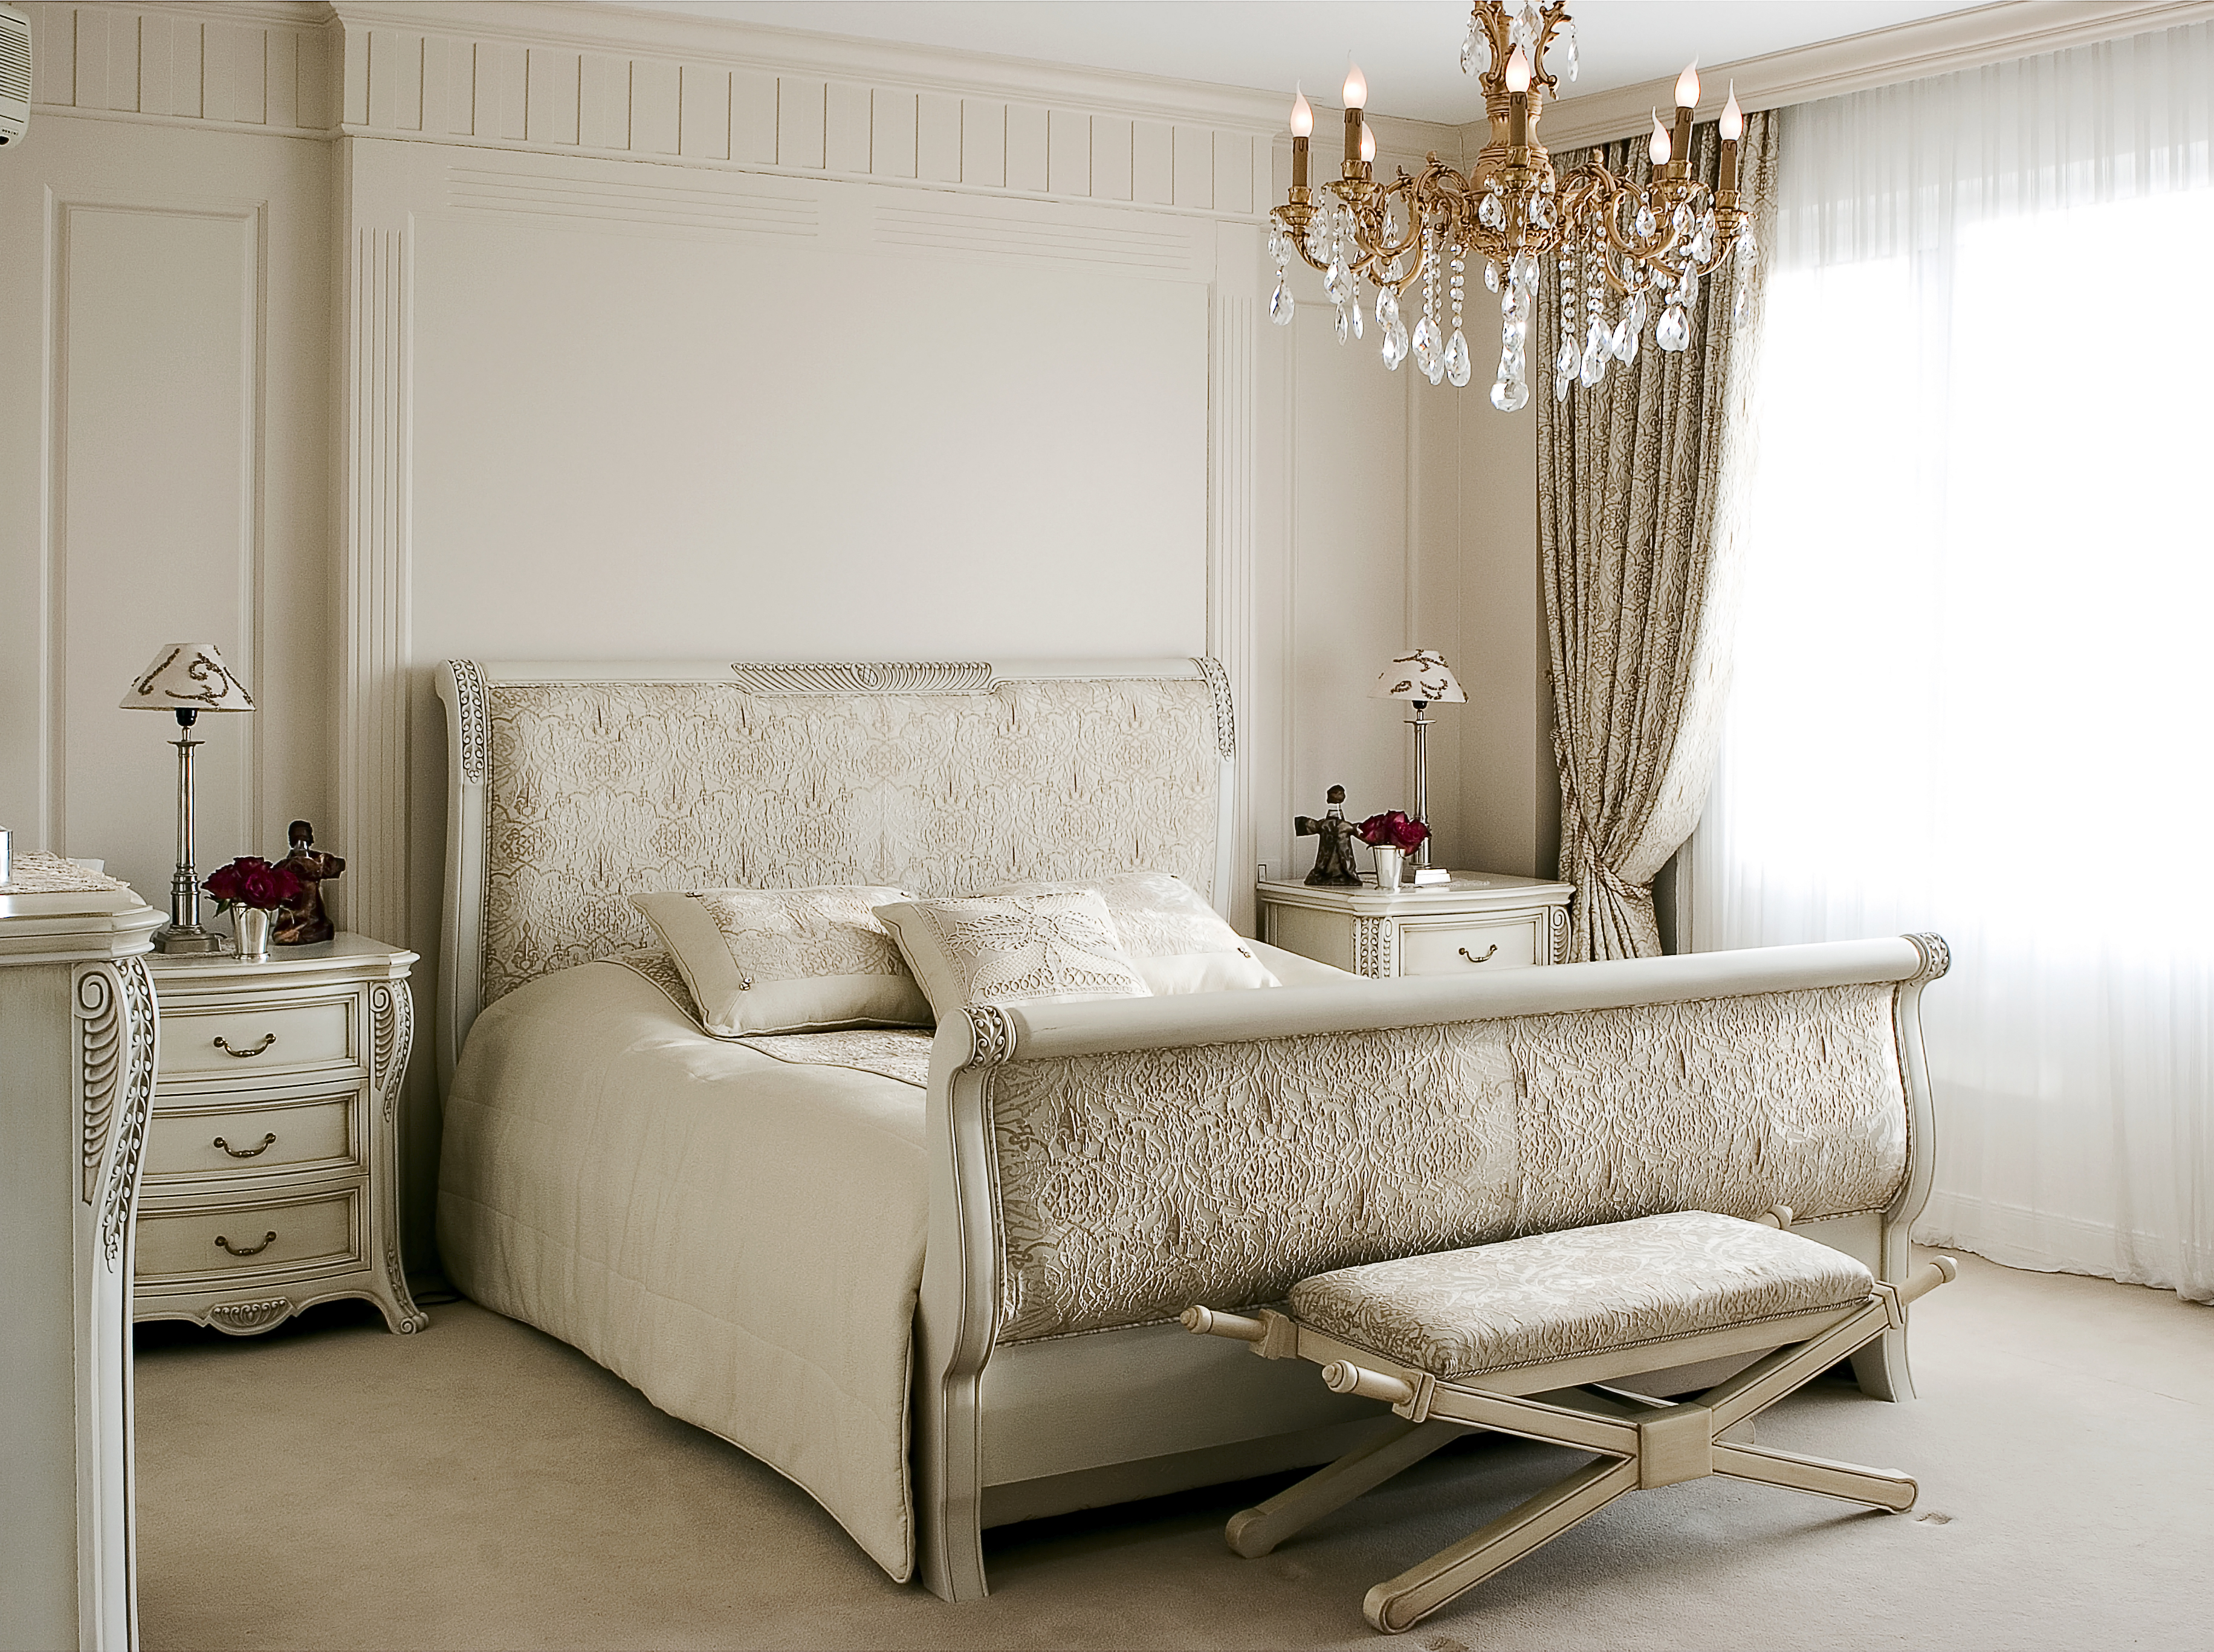 Nice interior designs of bedrooms to check out